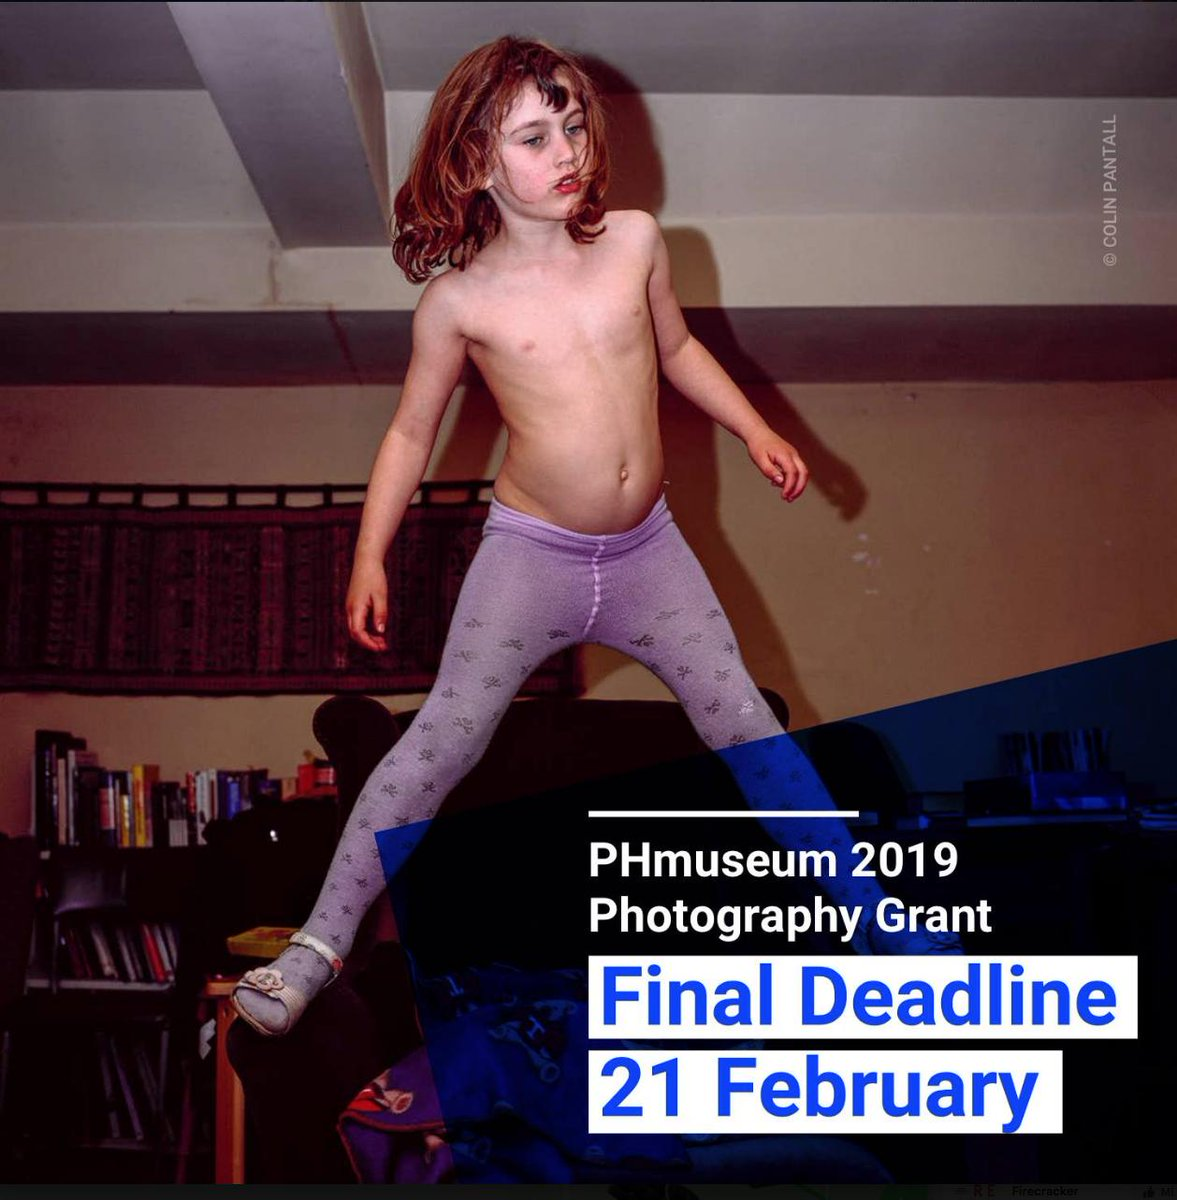 Only 3 days left to apply | DEADLINE 21 FEBRUARY | Present your work for £15,000 in cash prizes and MUCH more at http://phmuseum.com/grant   — NESSUNO[press] (NESSUNOpress) February 18, 2019  nessunopress